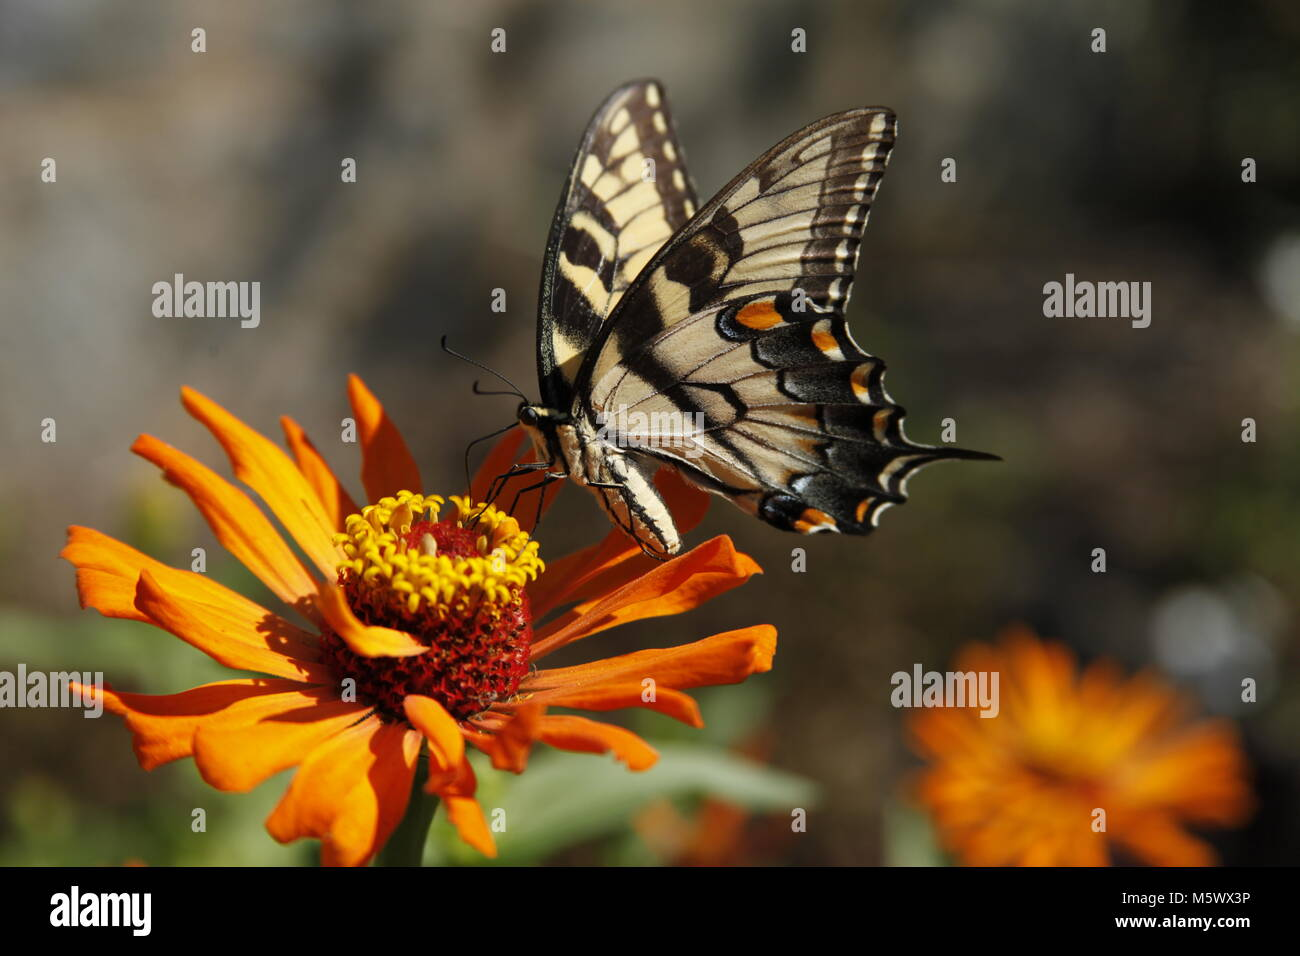 Eastern yellow tiger swallowtail butterfly Stock Photo